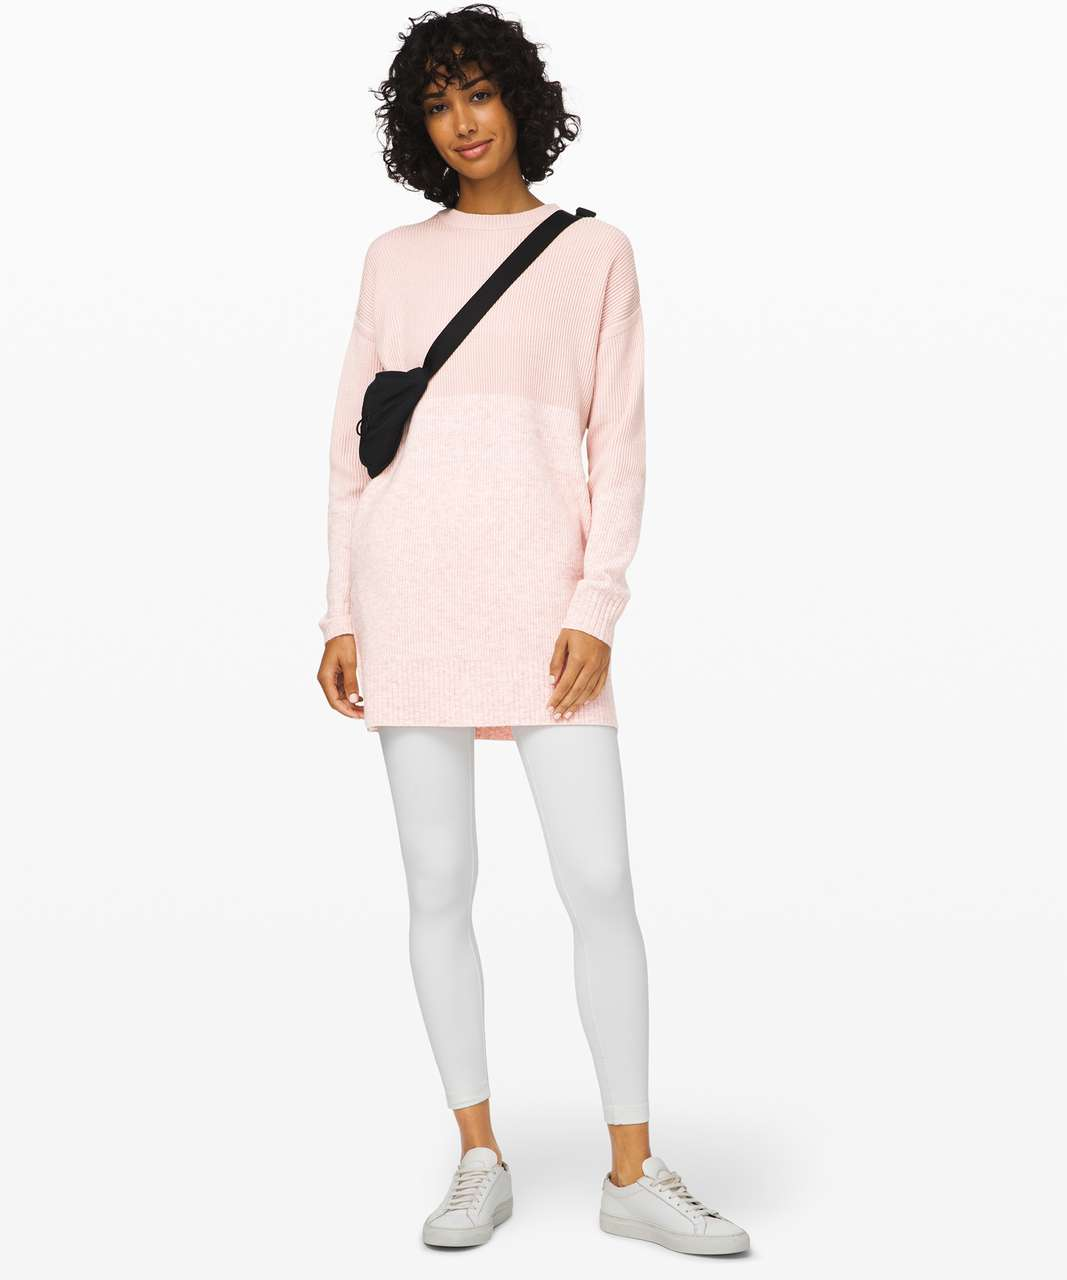 Lululemon Restful Intention Sweater - Pink Bliss / Heathered Pink Bliss